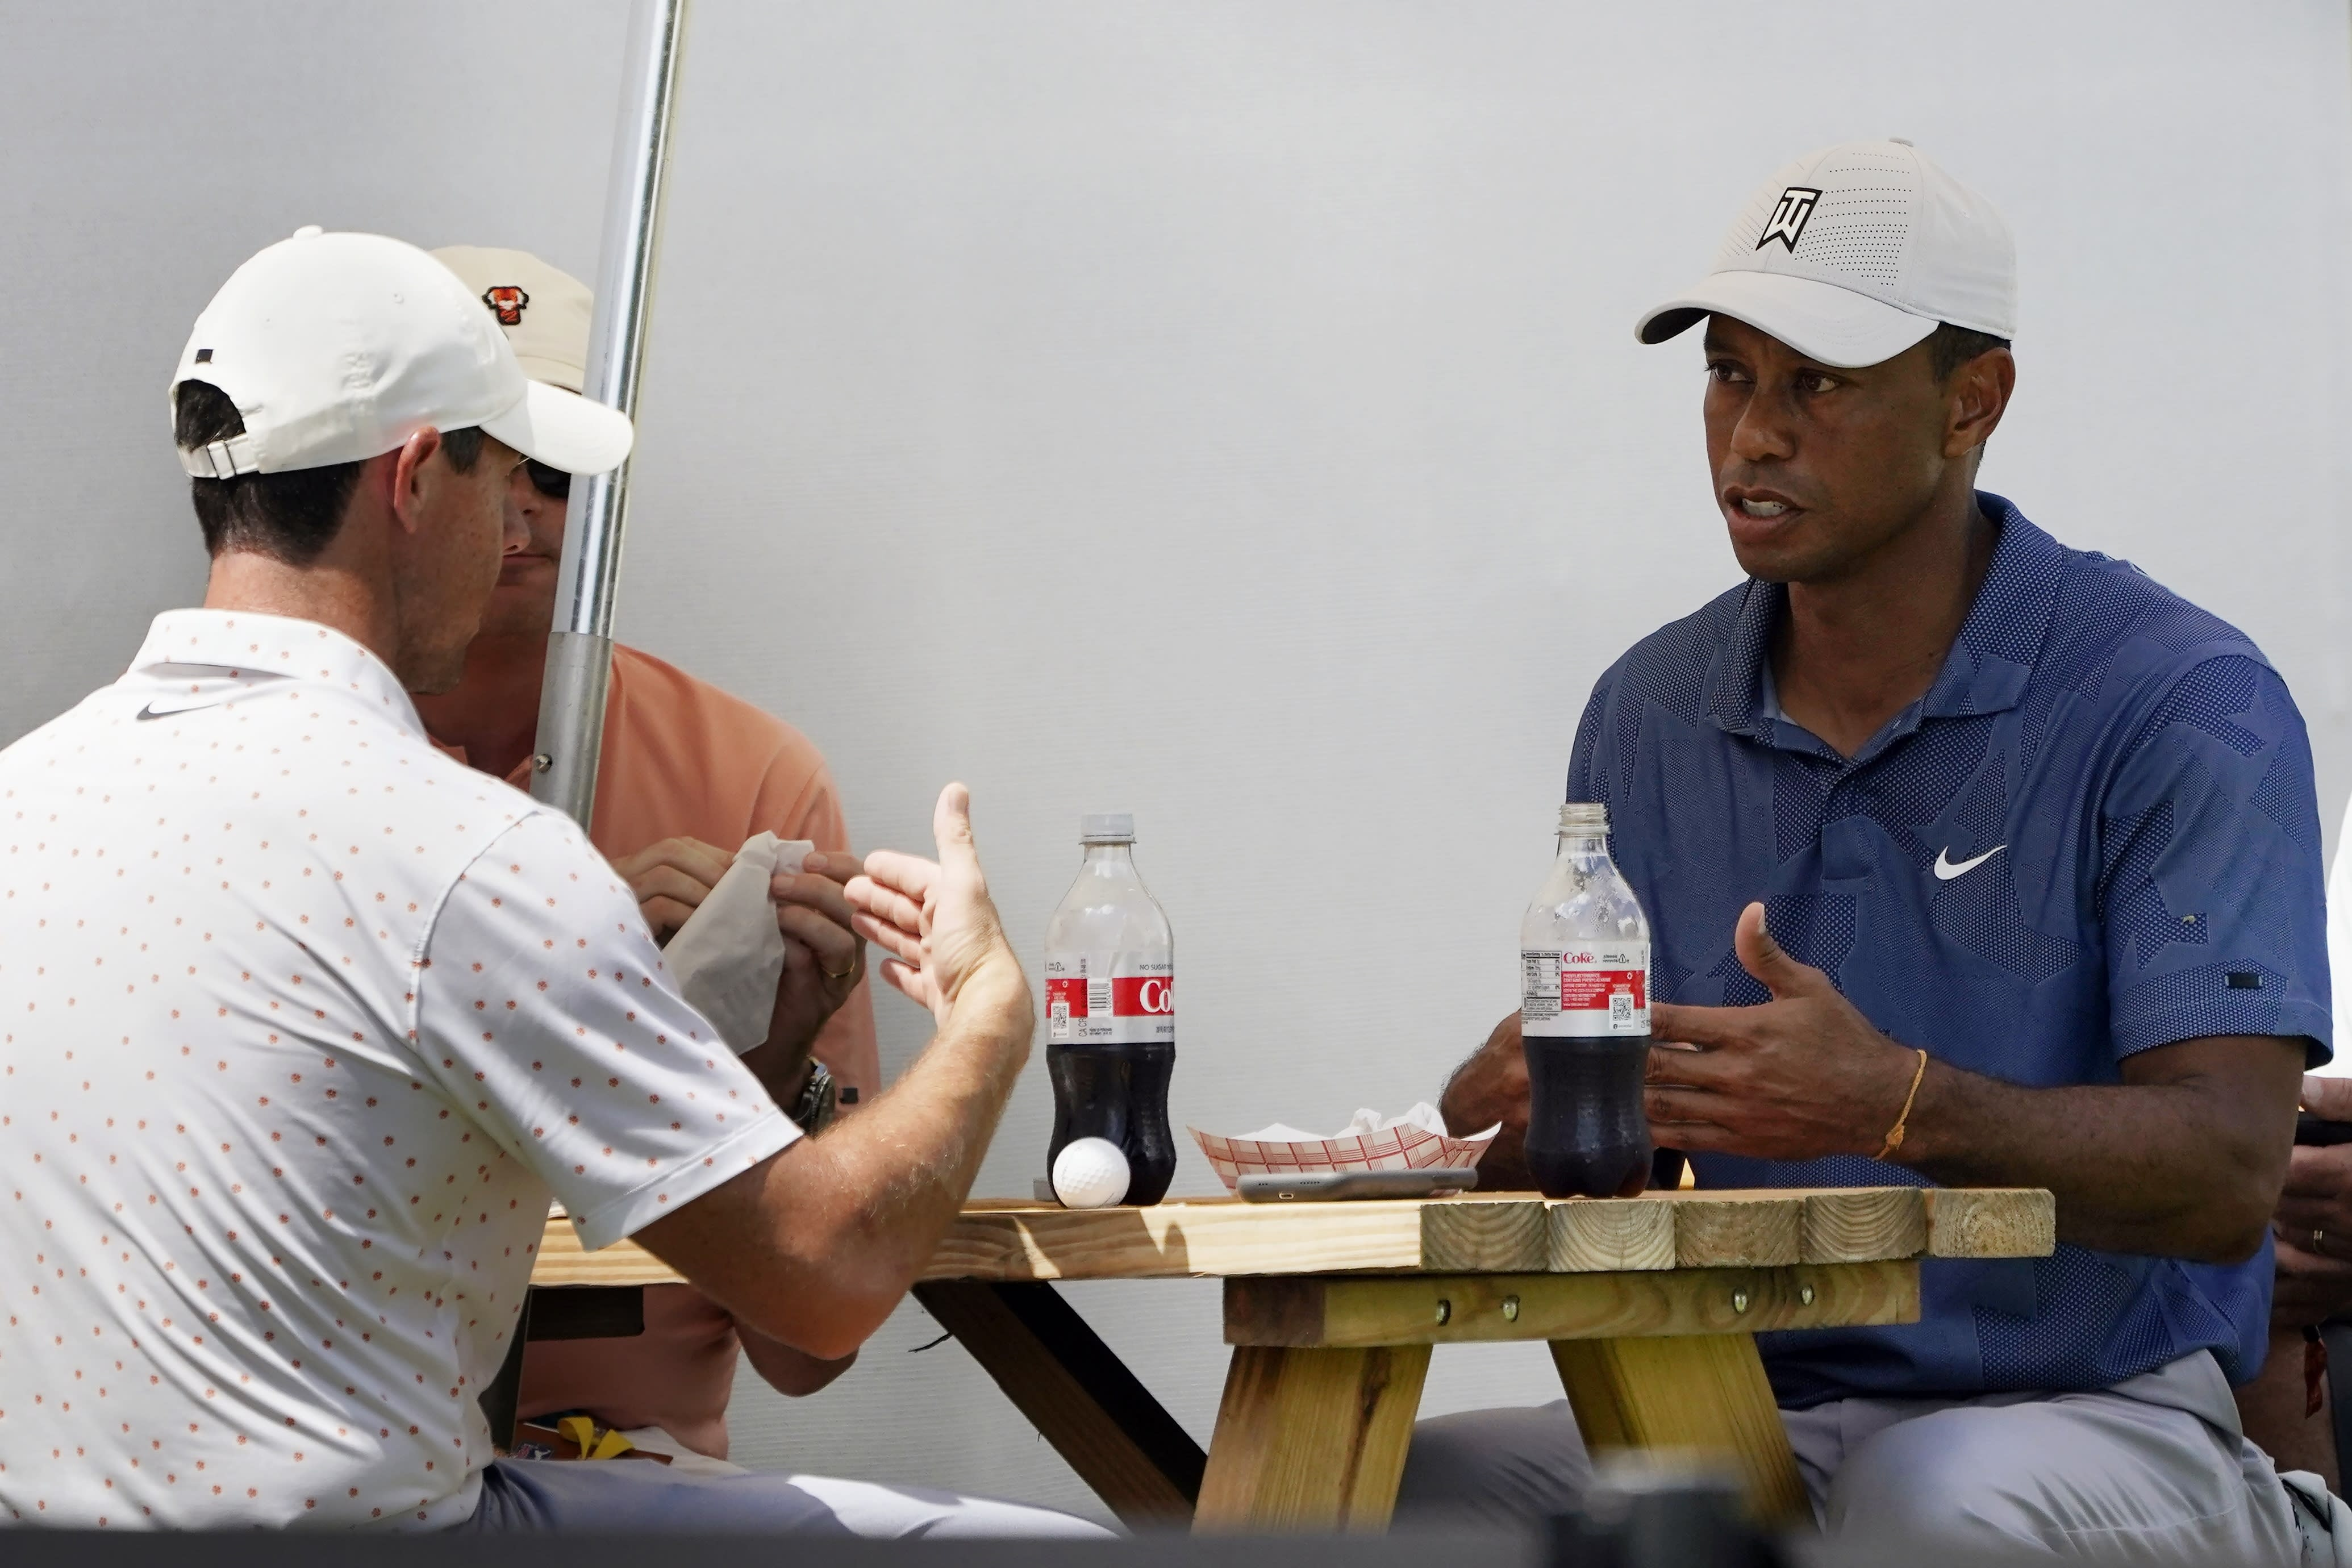 Tiger Woods, right, has lunch with Rory McIlory, left, during the third round of the Northern Trust golf tournament at TPC Boston, Saturday, Aug. 22, 2020, in Norton, Mass. (AP Photo/Charles Krupa)